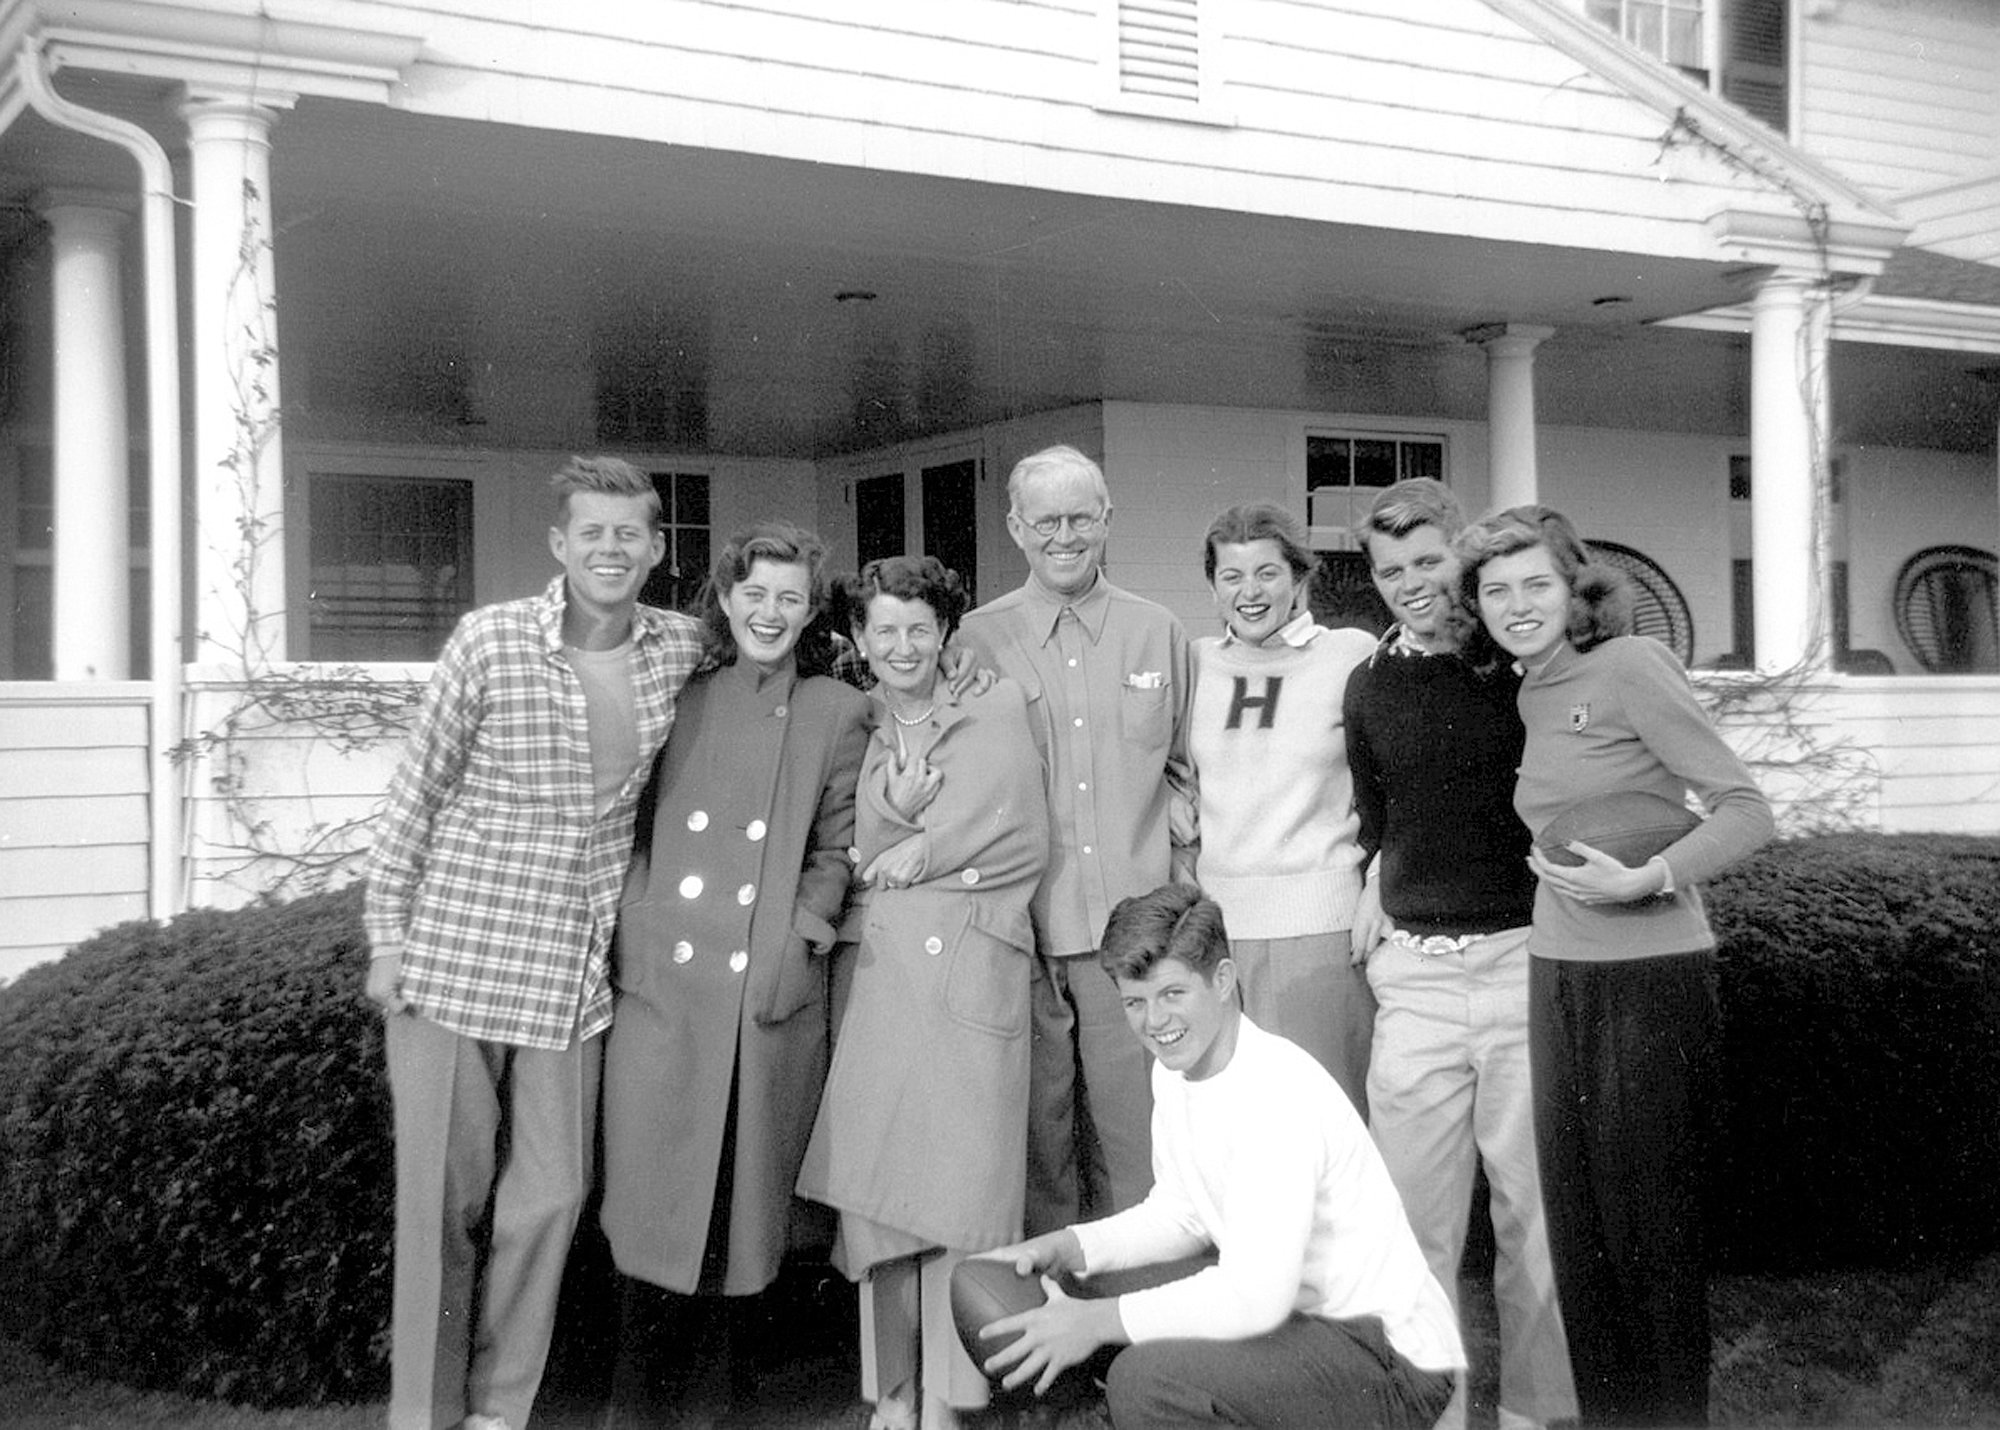 Photos from Kennedy Family Collection  /  John F. Kennedy Library Foundation via APIn this circa 1948 photo provided by the Kennedy Family Collection, courtesy of the John F. Kennedy Library Foundation, members of the Kennedy family pose for a photo in Hyannis Port, Massachusetts. They are from left, John F. Kennedy, Jean Kennedy, Rose Kennedy, Joseph P. Kennedy Sr., Patricia Kennedy, Robert F. Kennedy, Eunice Kennedy, and in foreground, Edward M. Kennedy.